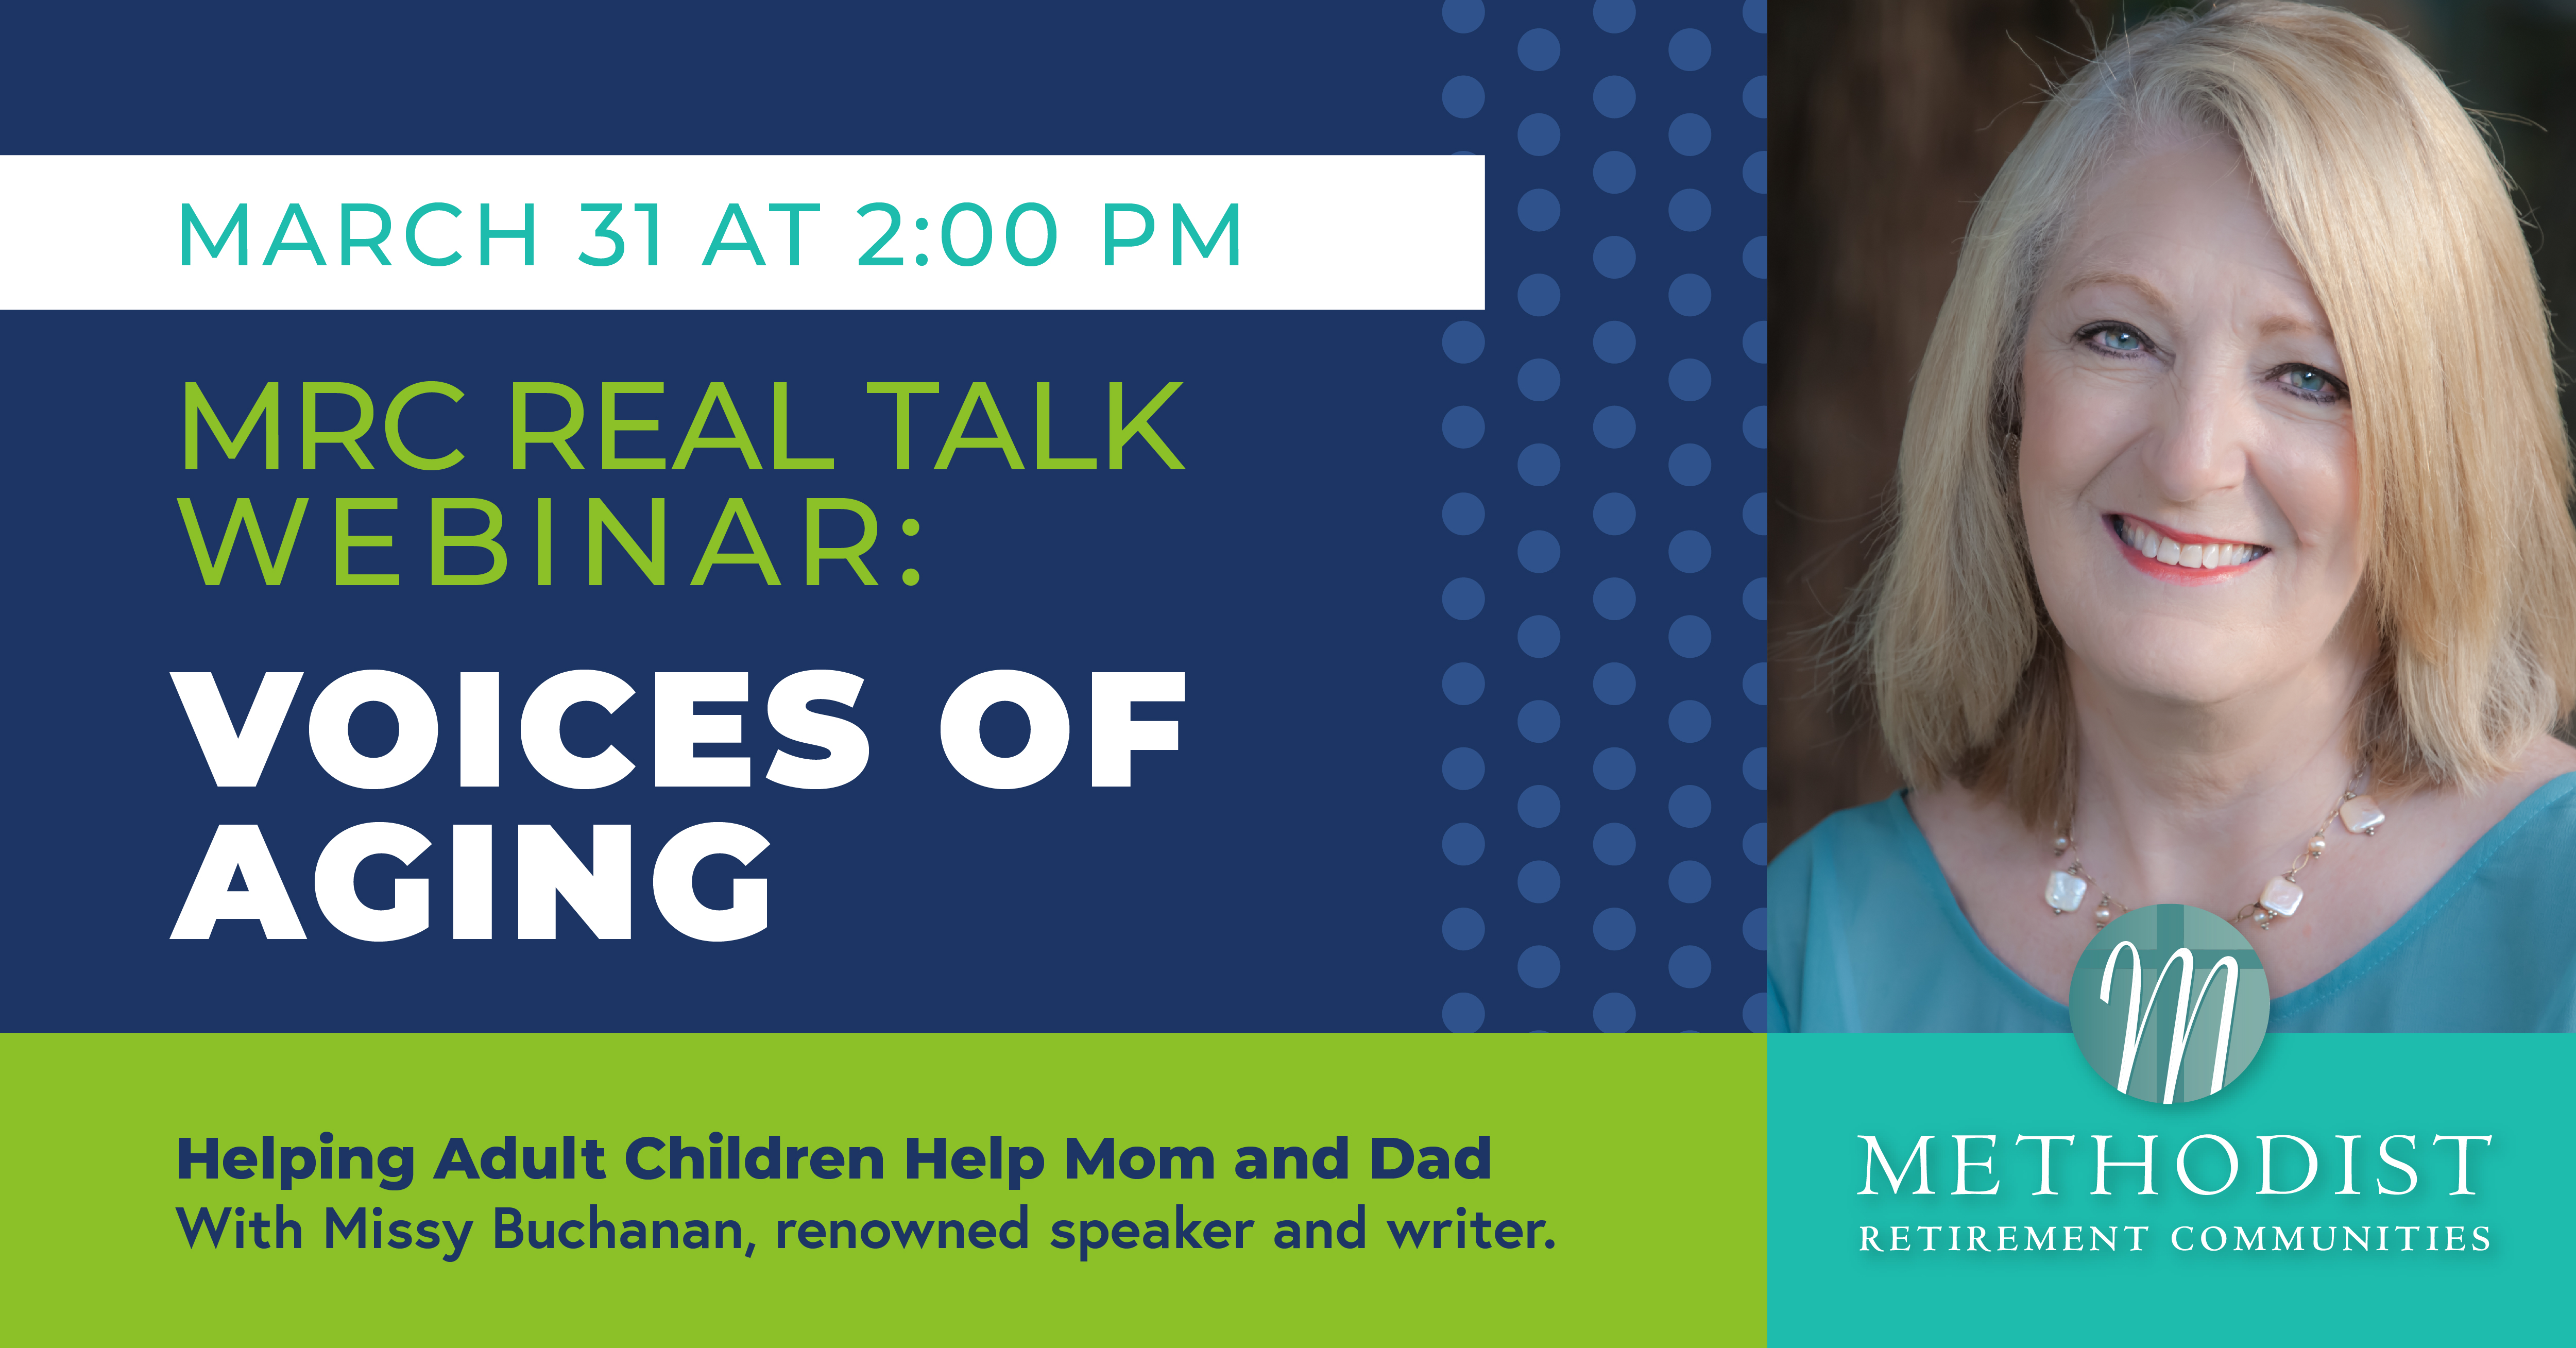 MRC REAL TALK WEBINAR: VOICES OF AGING